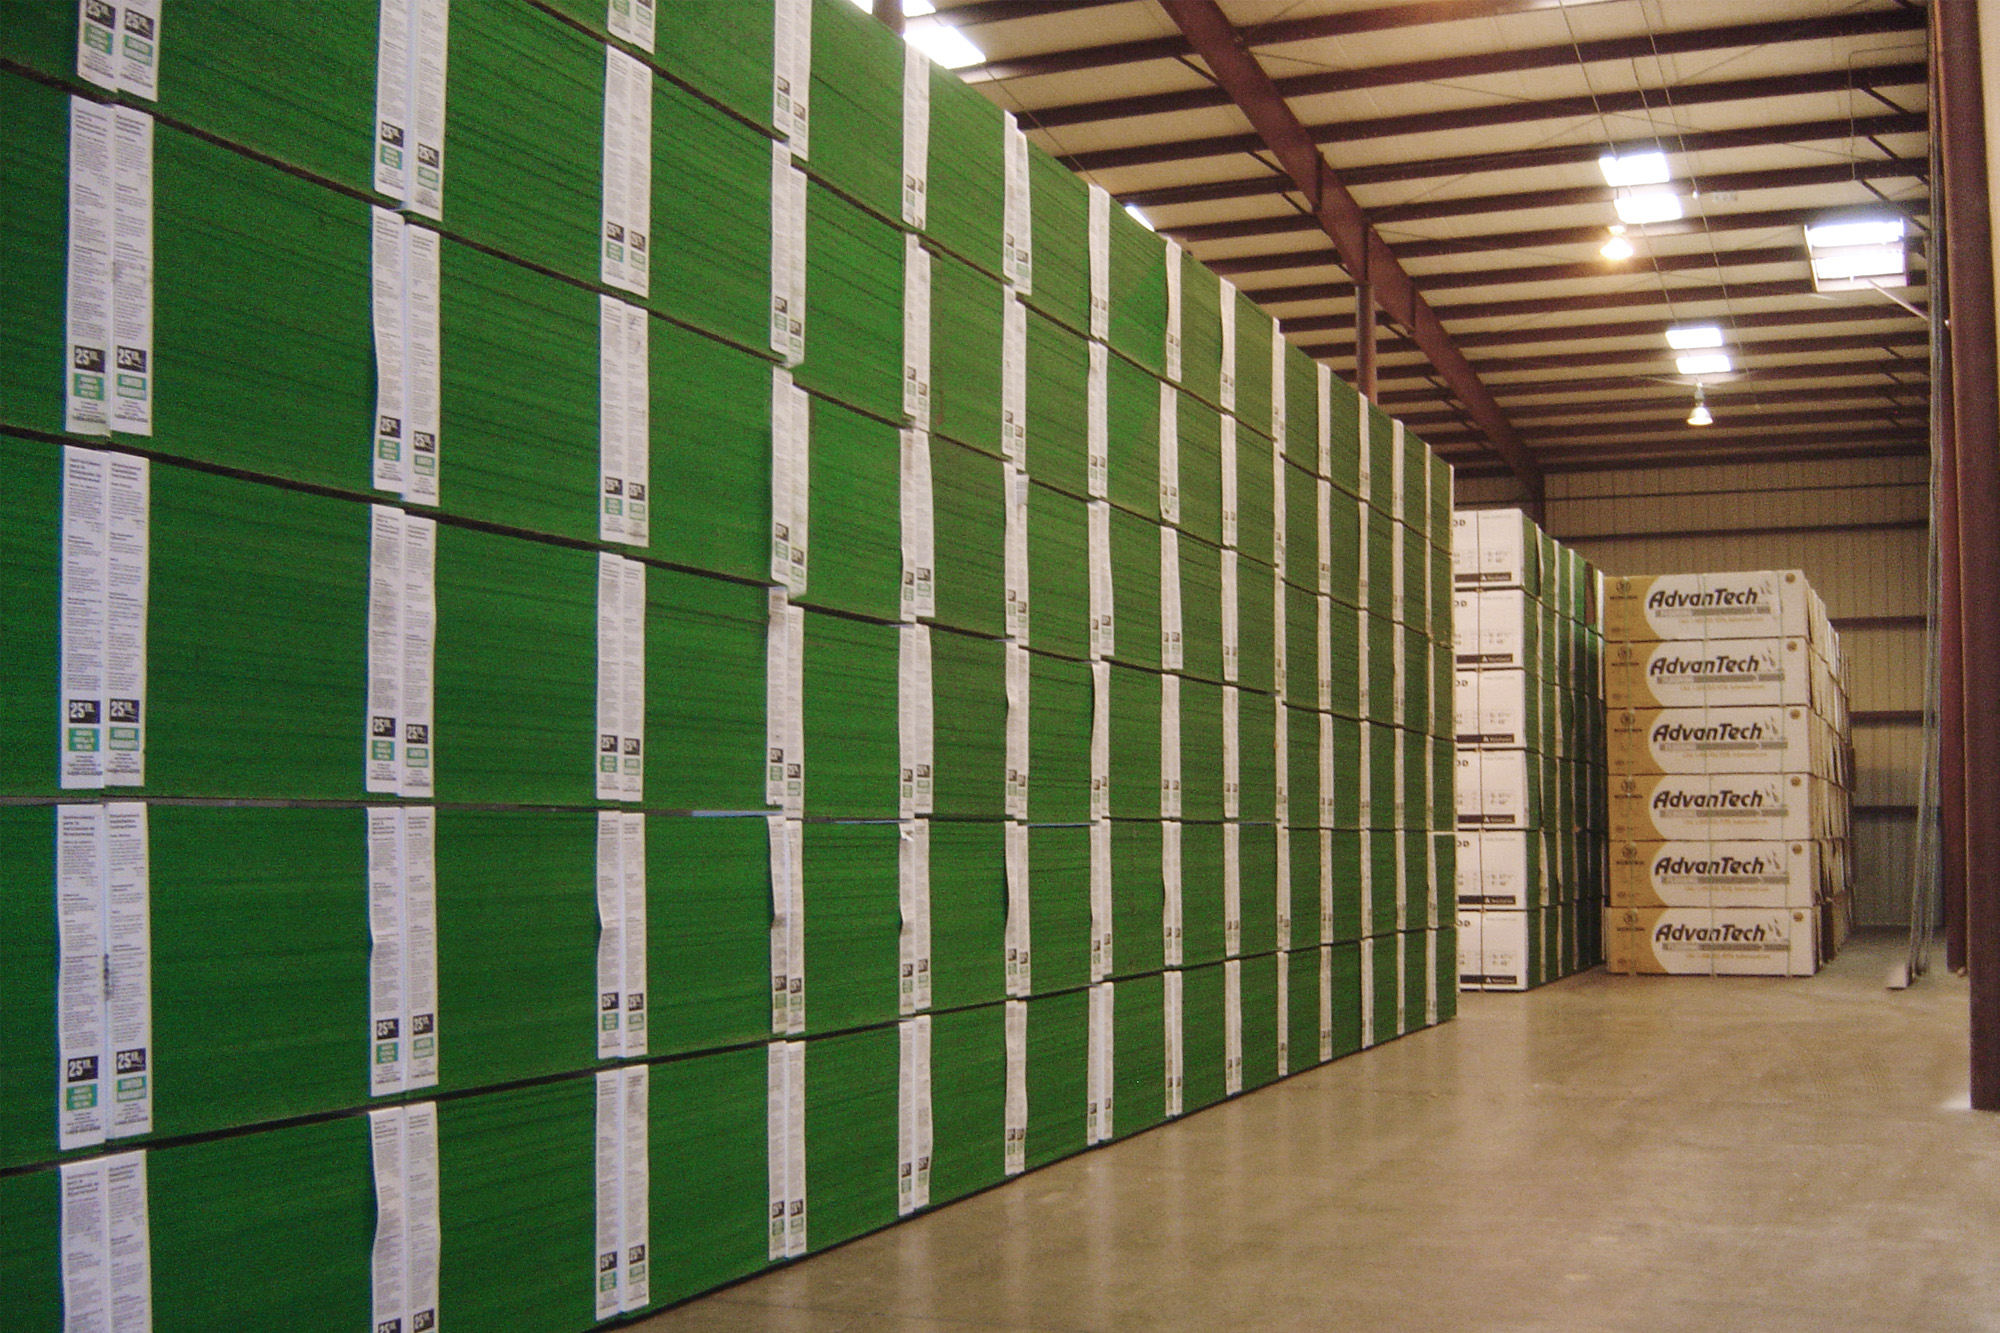 osb stacked in warehouse